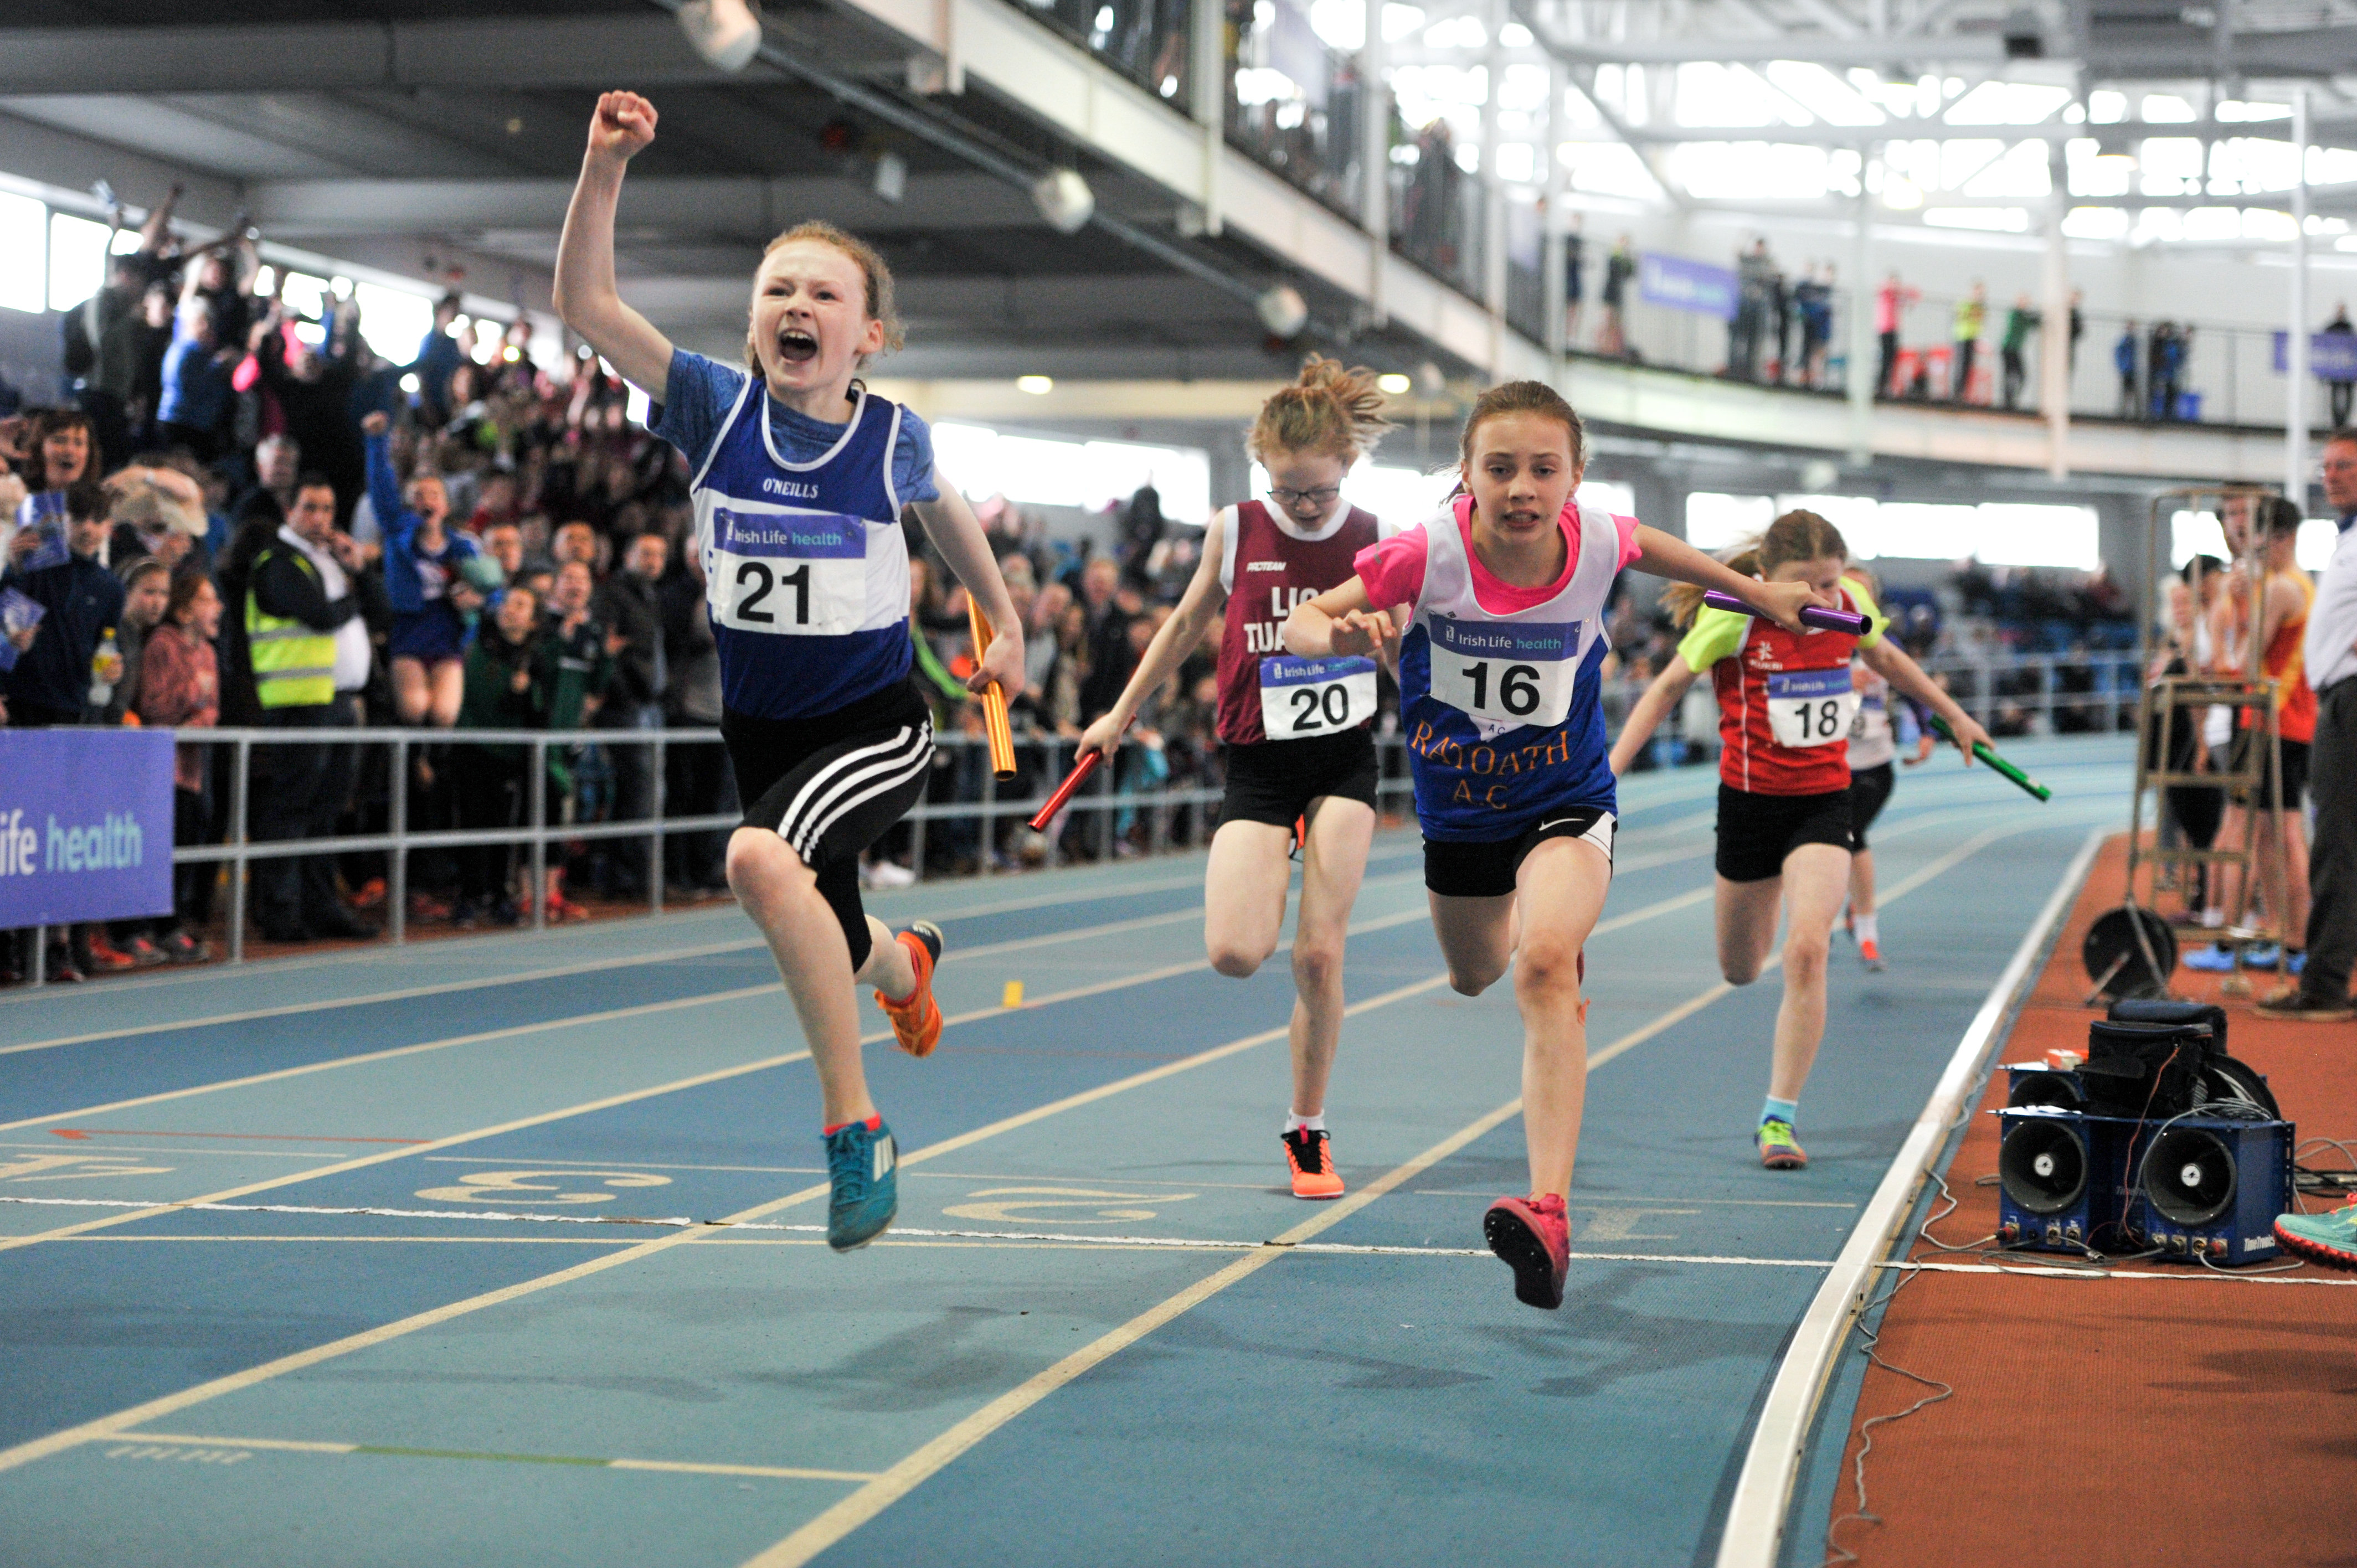 The Entry Lists for the National Juvenile Indoors are now available online